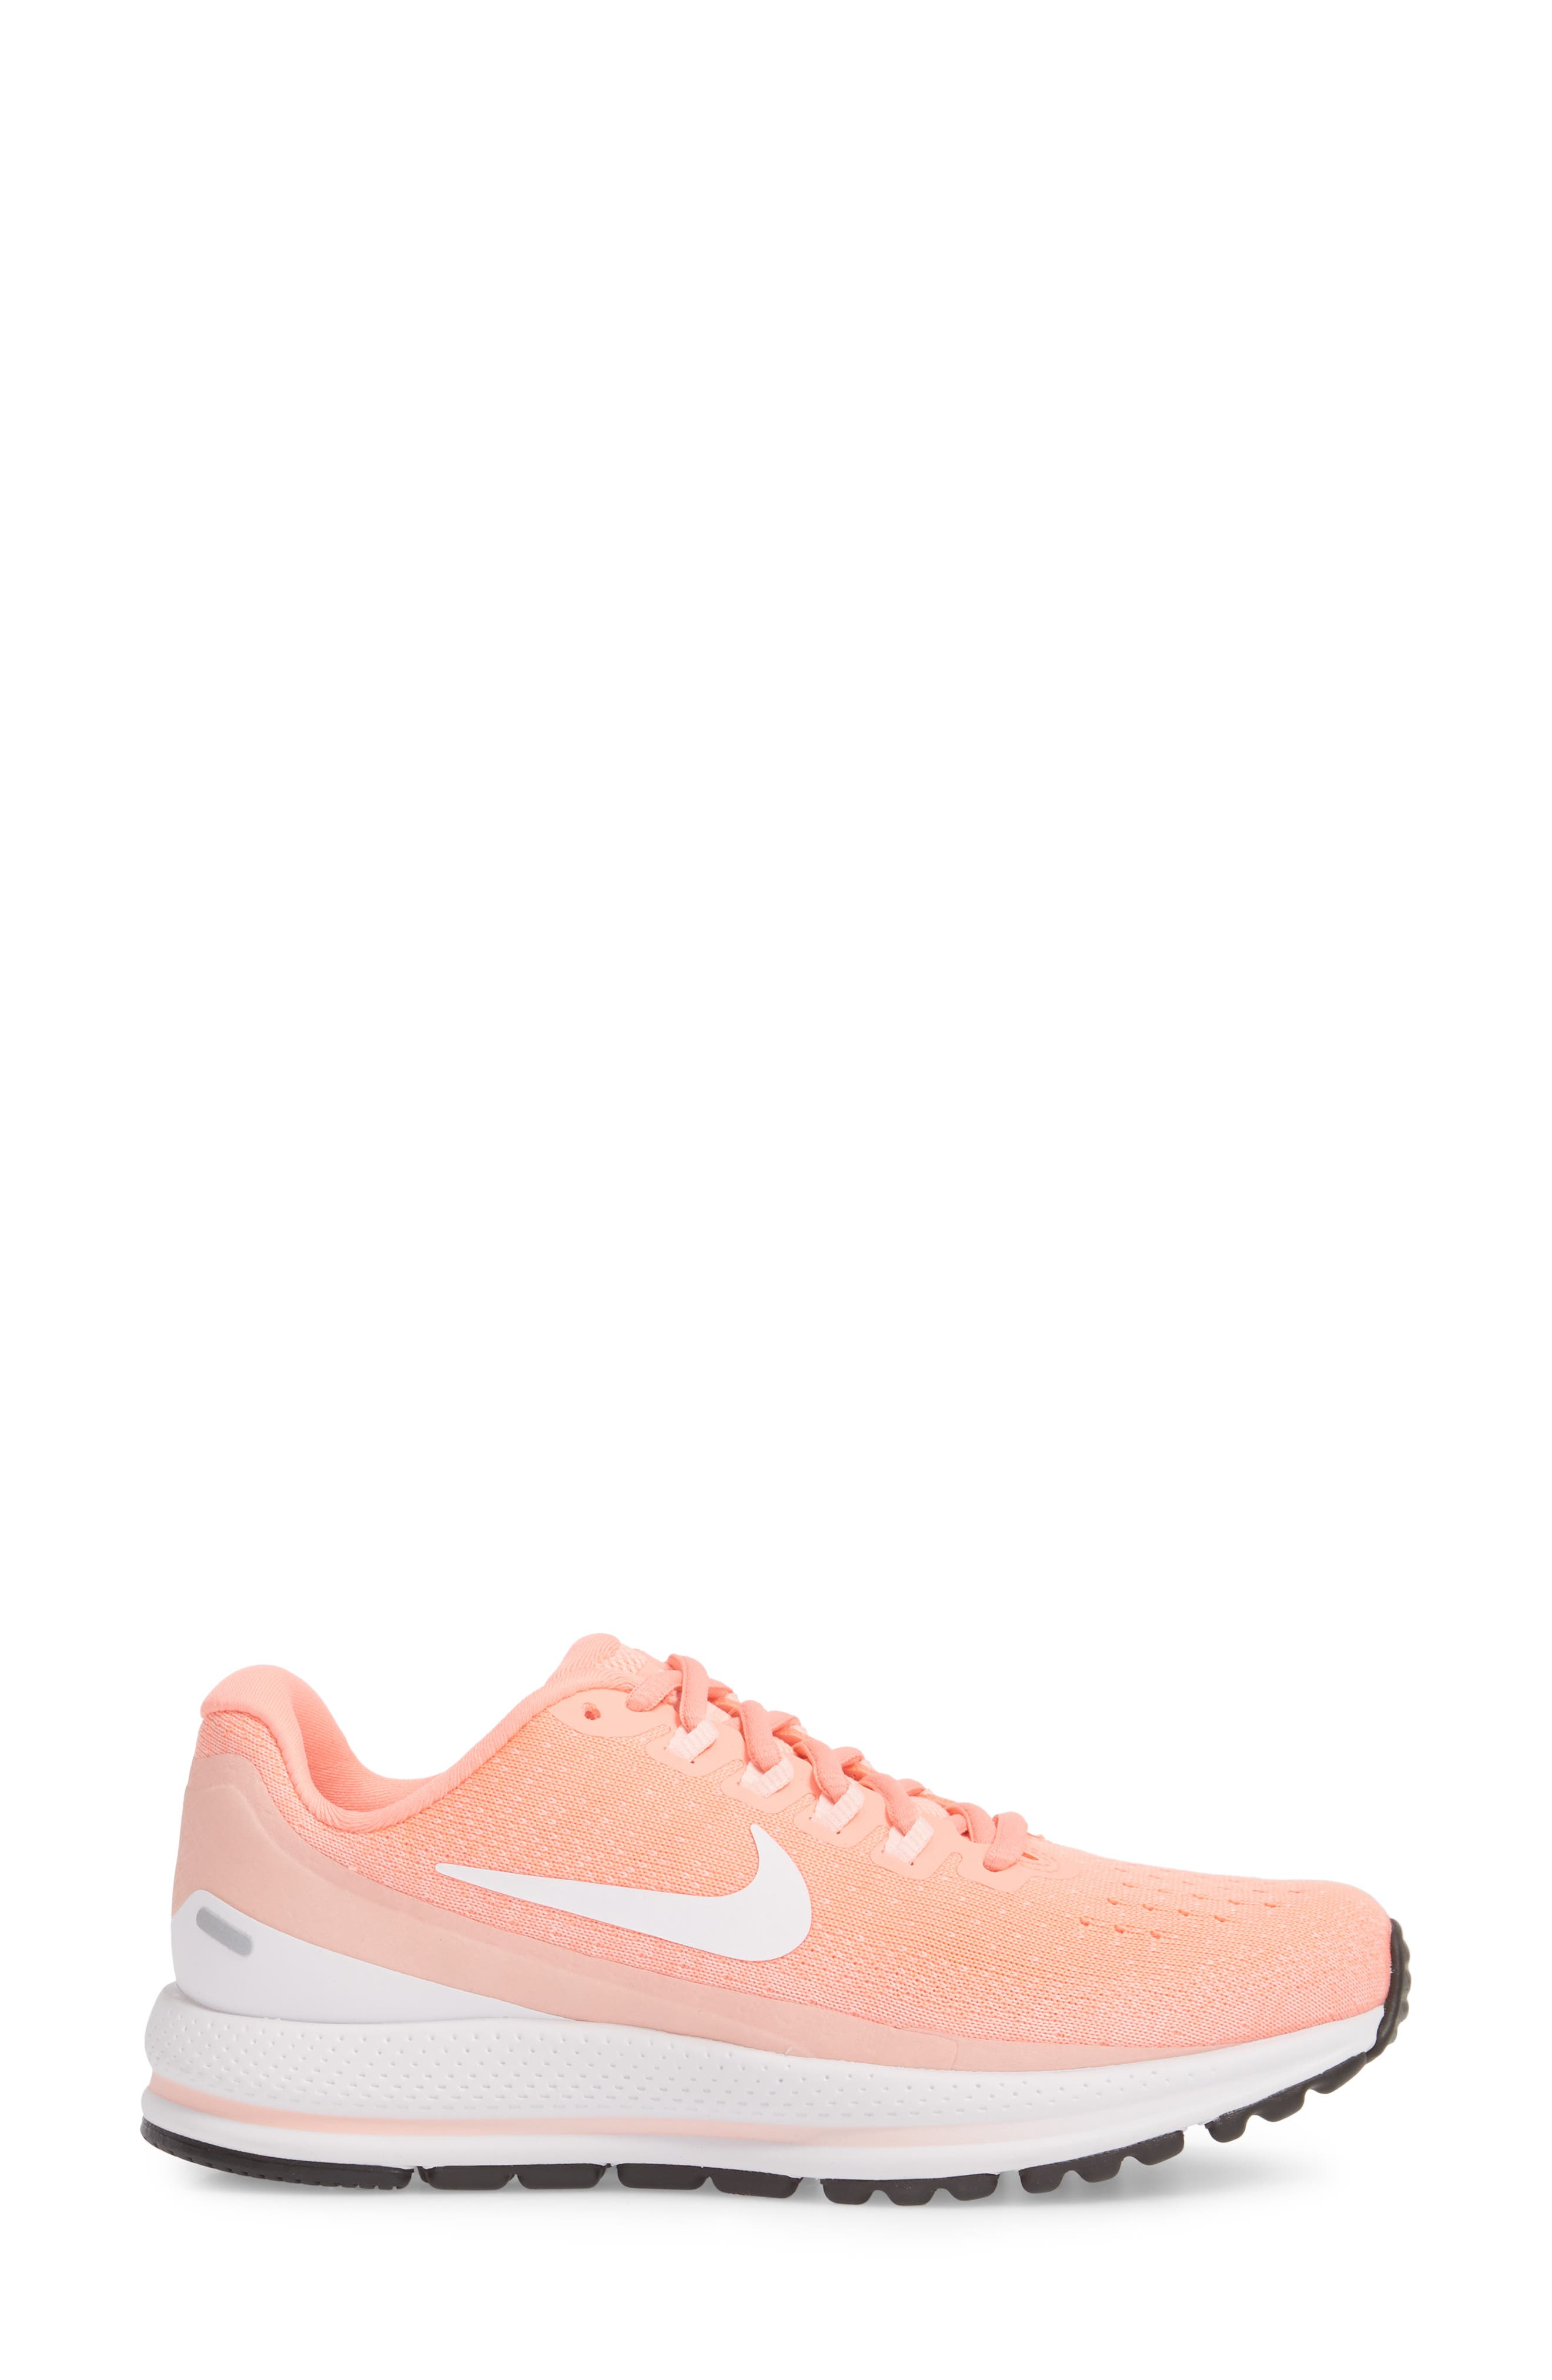 Air Zoom Vomero 13 Running Shoe,                             Alternate thumbnail 27, color,